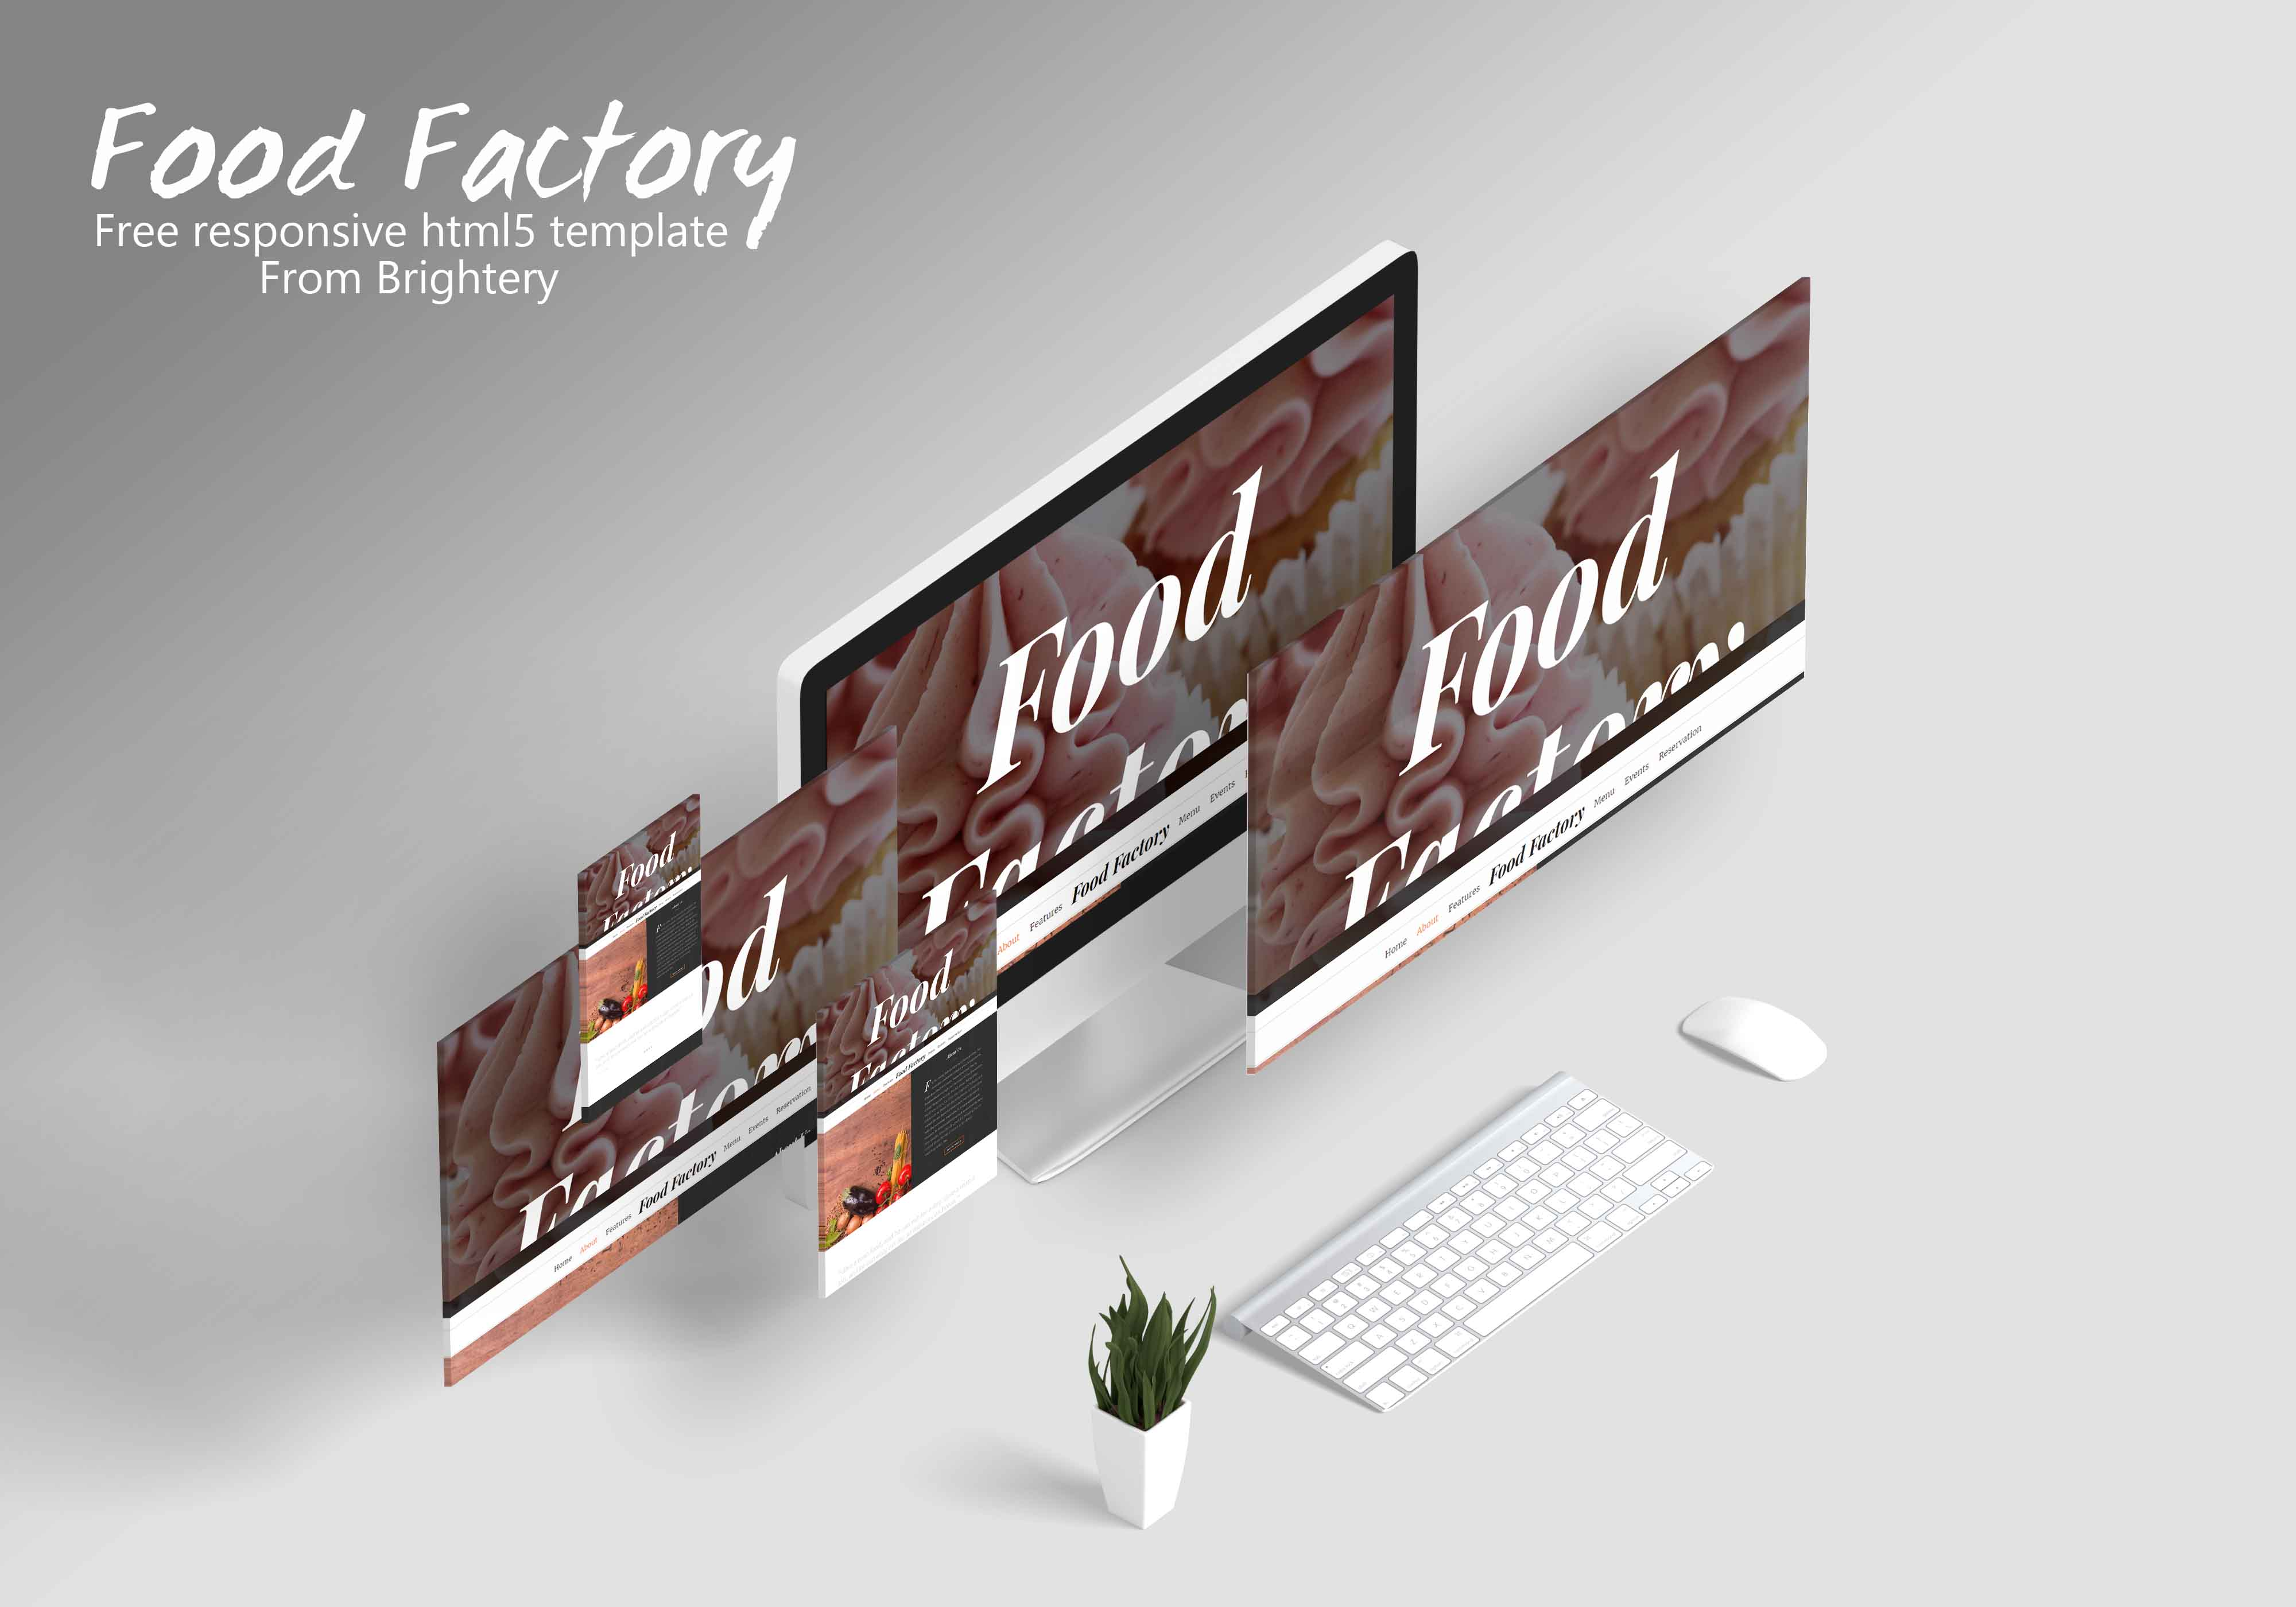 Food Factory - Free HTML5 template